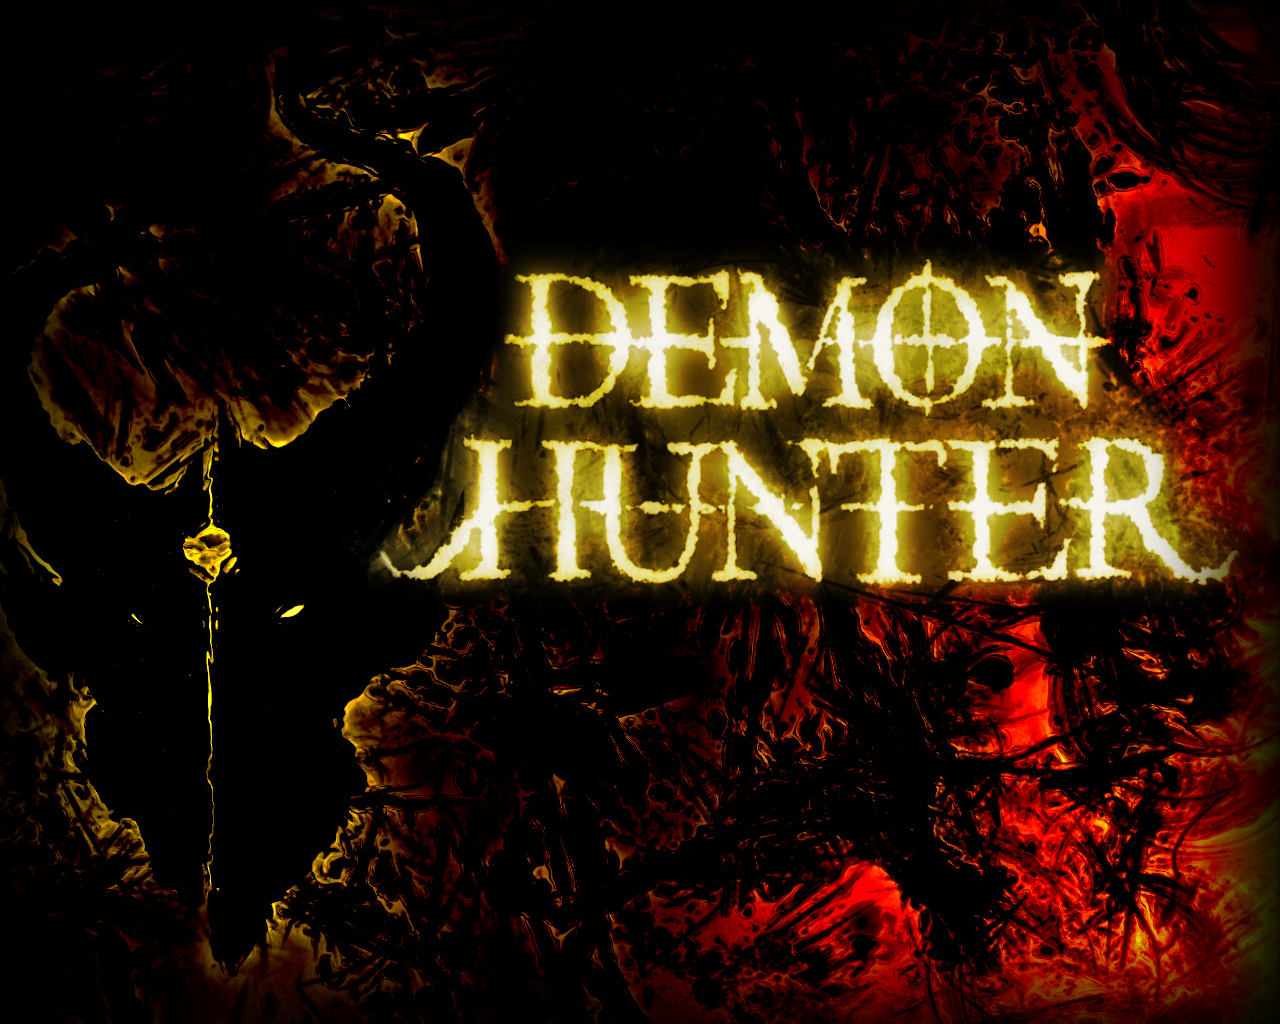 Demon hunter favourites by regubaarcher on deviantart for Demon hunter